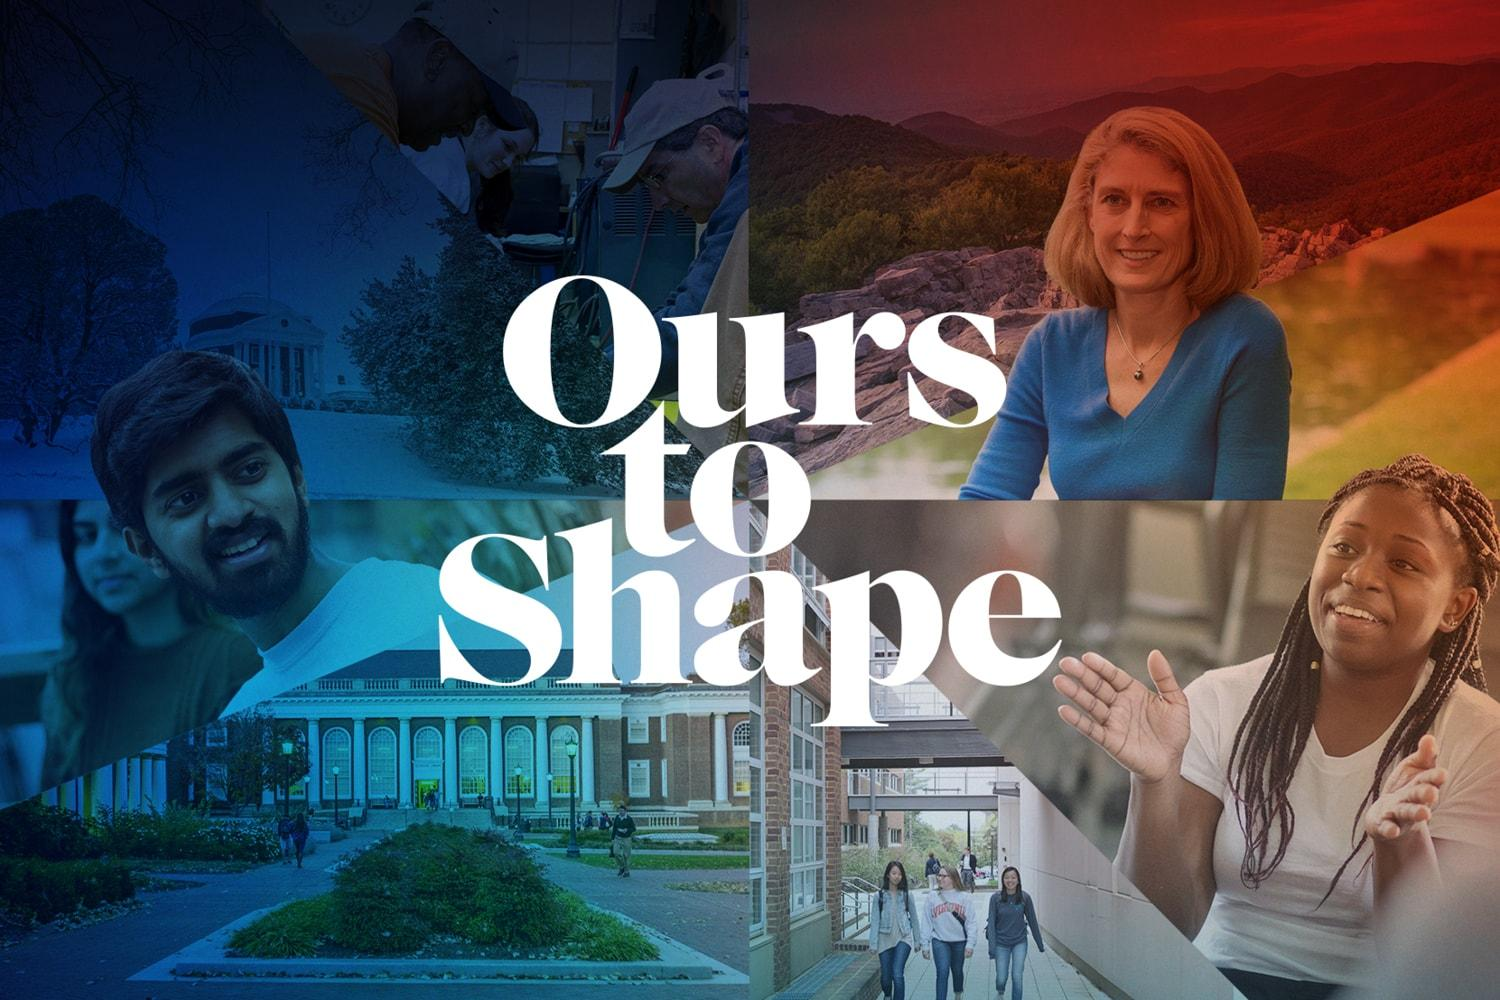 Ours to Shape